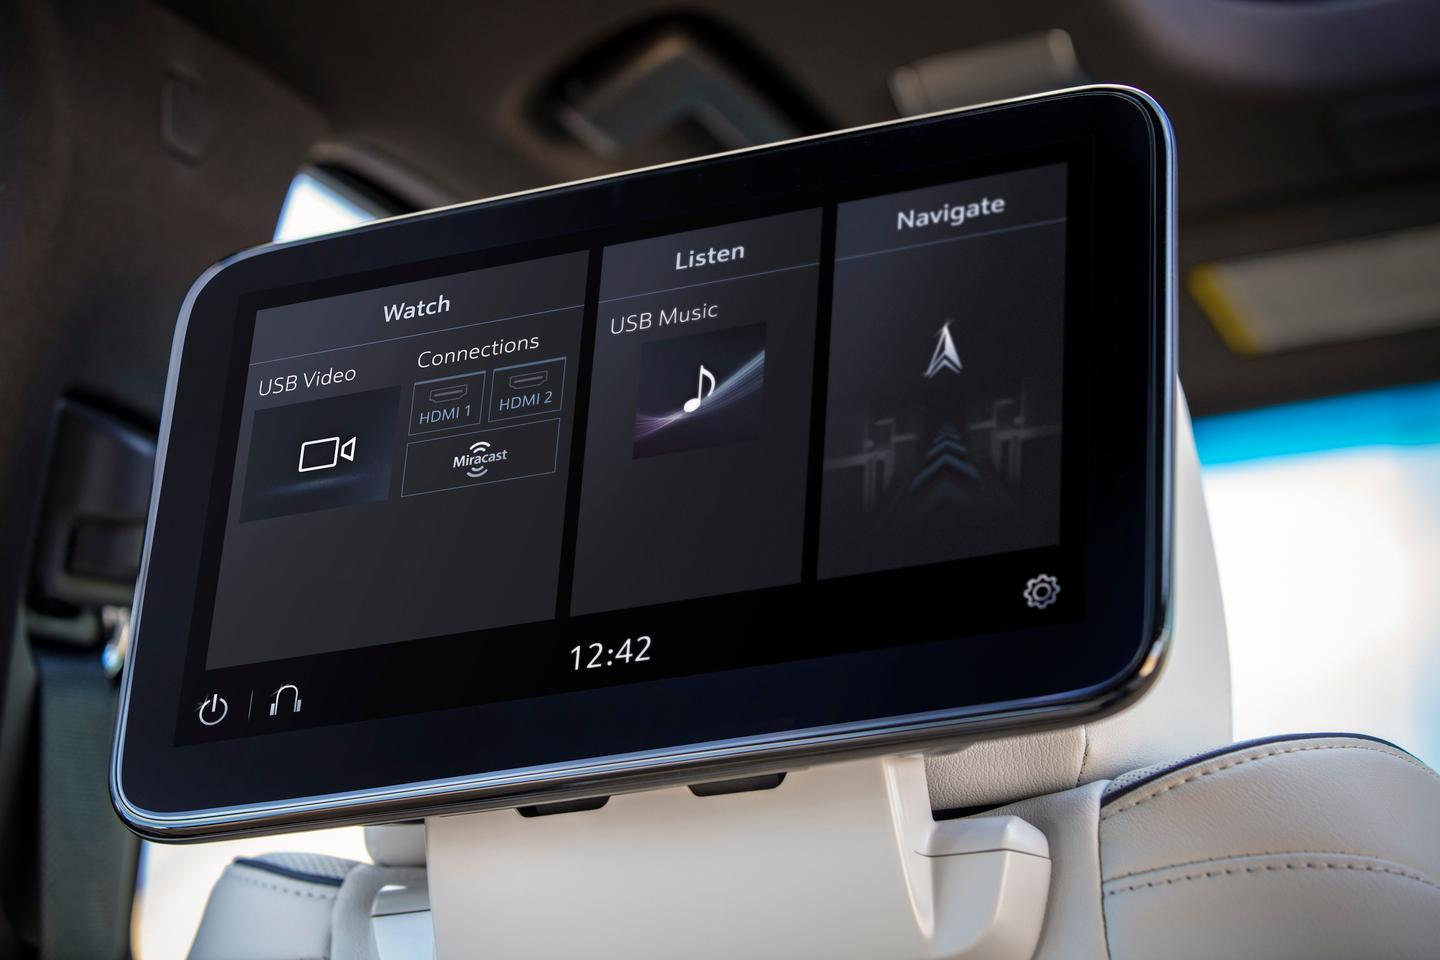 The rear seat entertainment unit in the 2021 Cadillac Escalade features smart ideas like navigation that can be sent forward to the driver